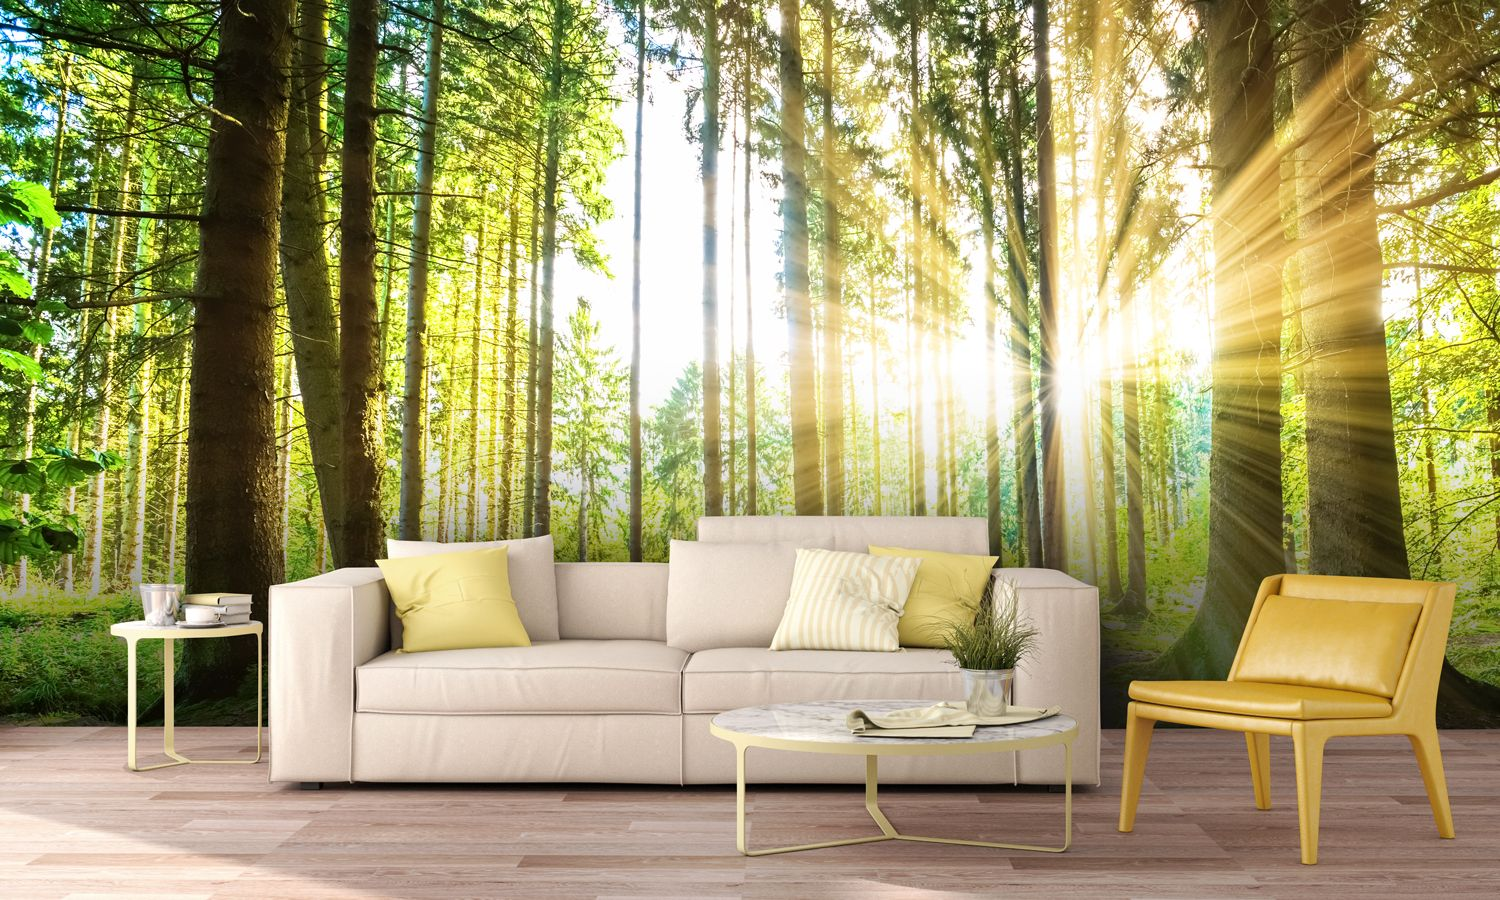 Forest Panoramic with Sunbeams Wall Mural | Wall murals, Forest ...